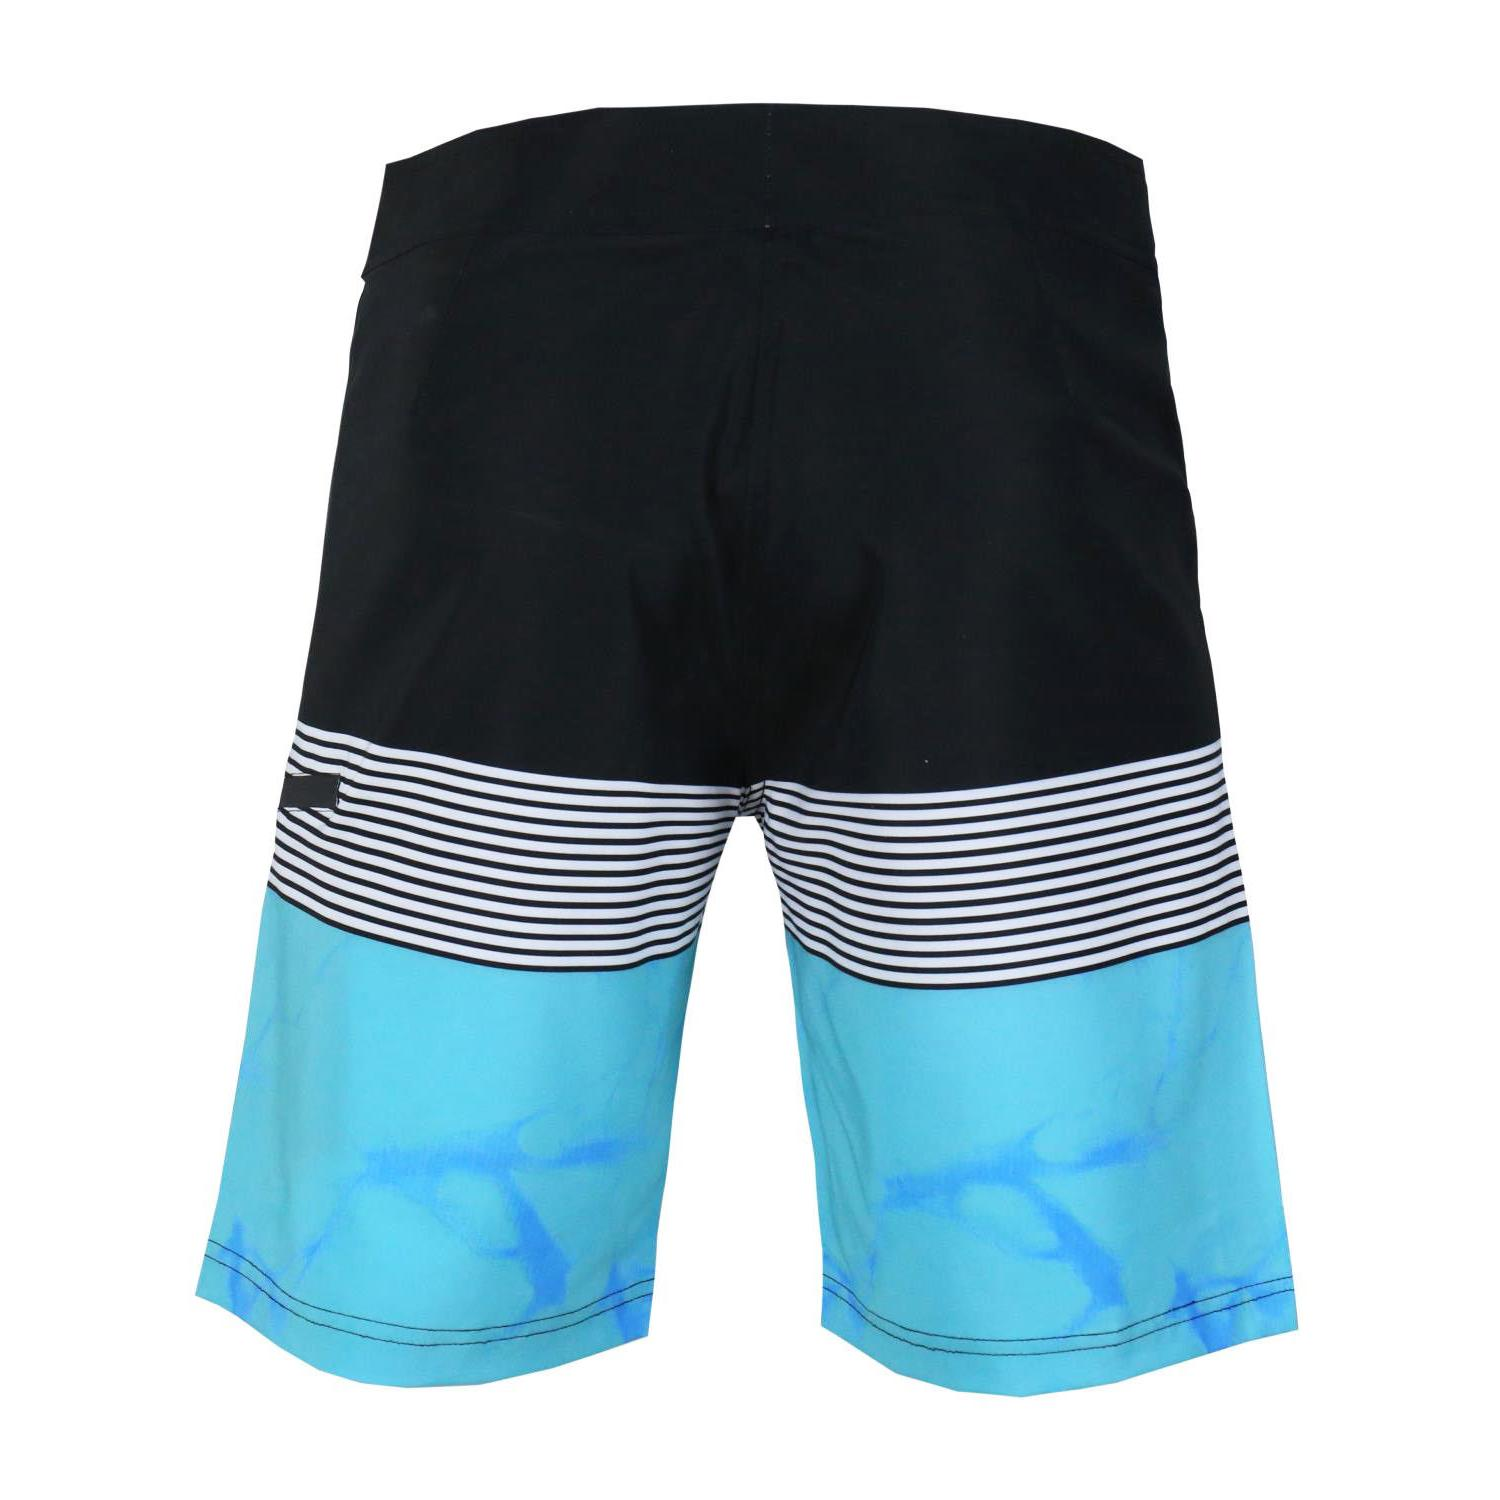 Men's Summer Swim Trunks Surf Board Shorts